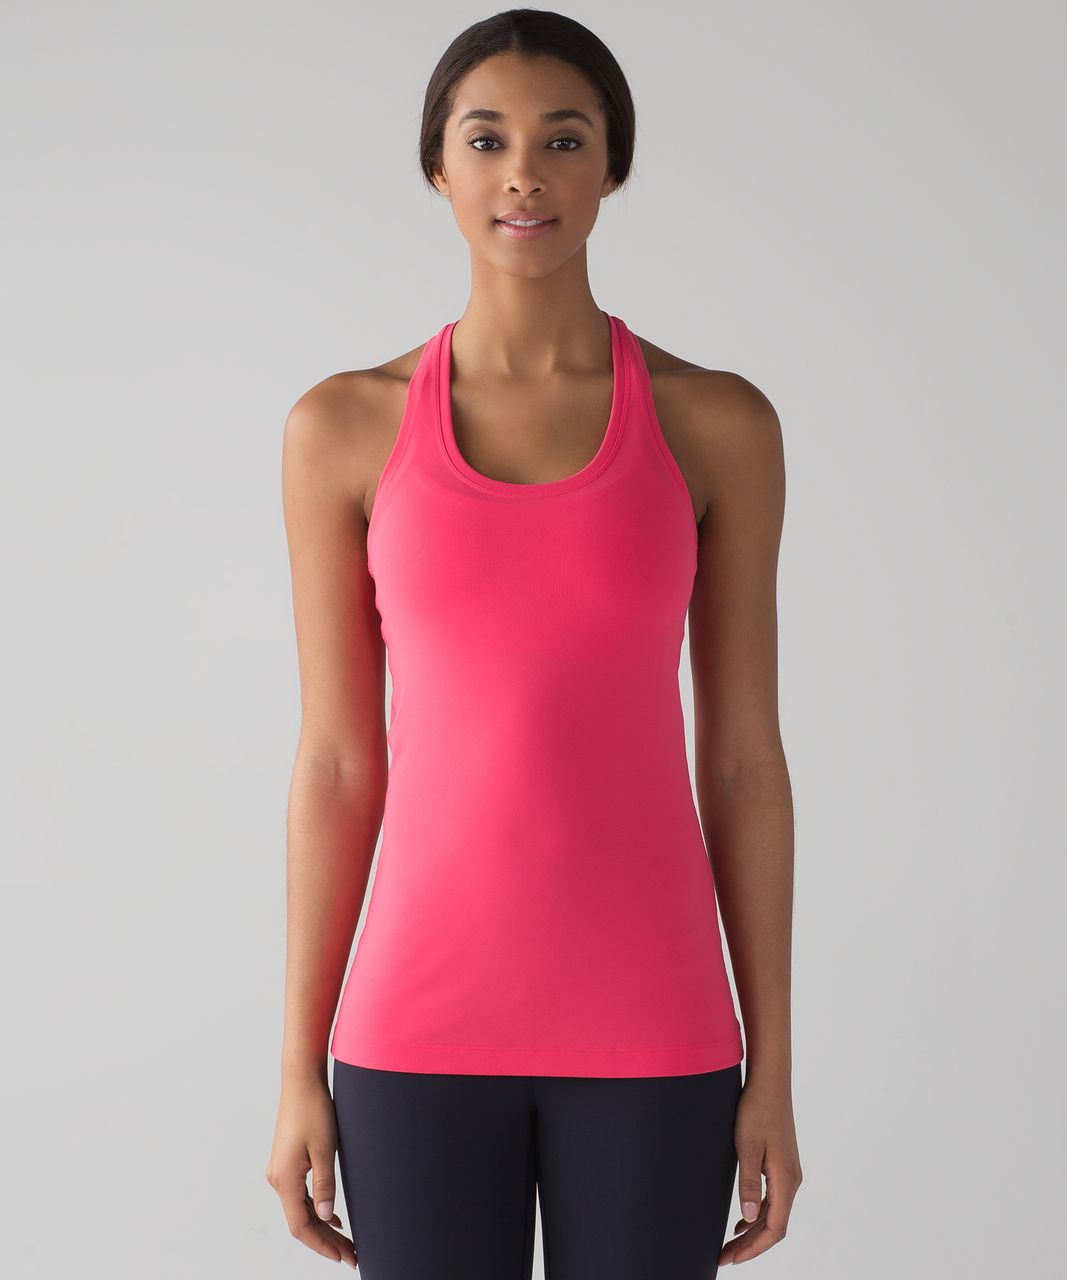 Lululemon Cool Racerback II - Lip Gloss